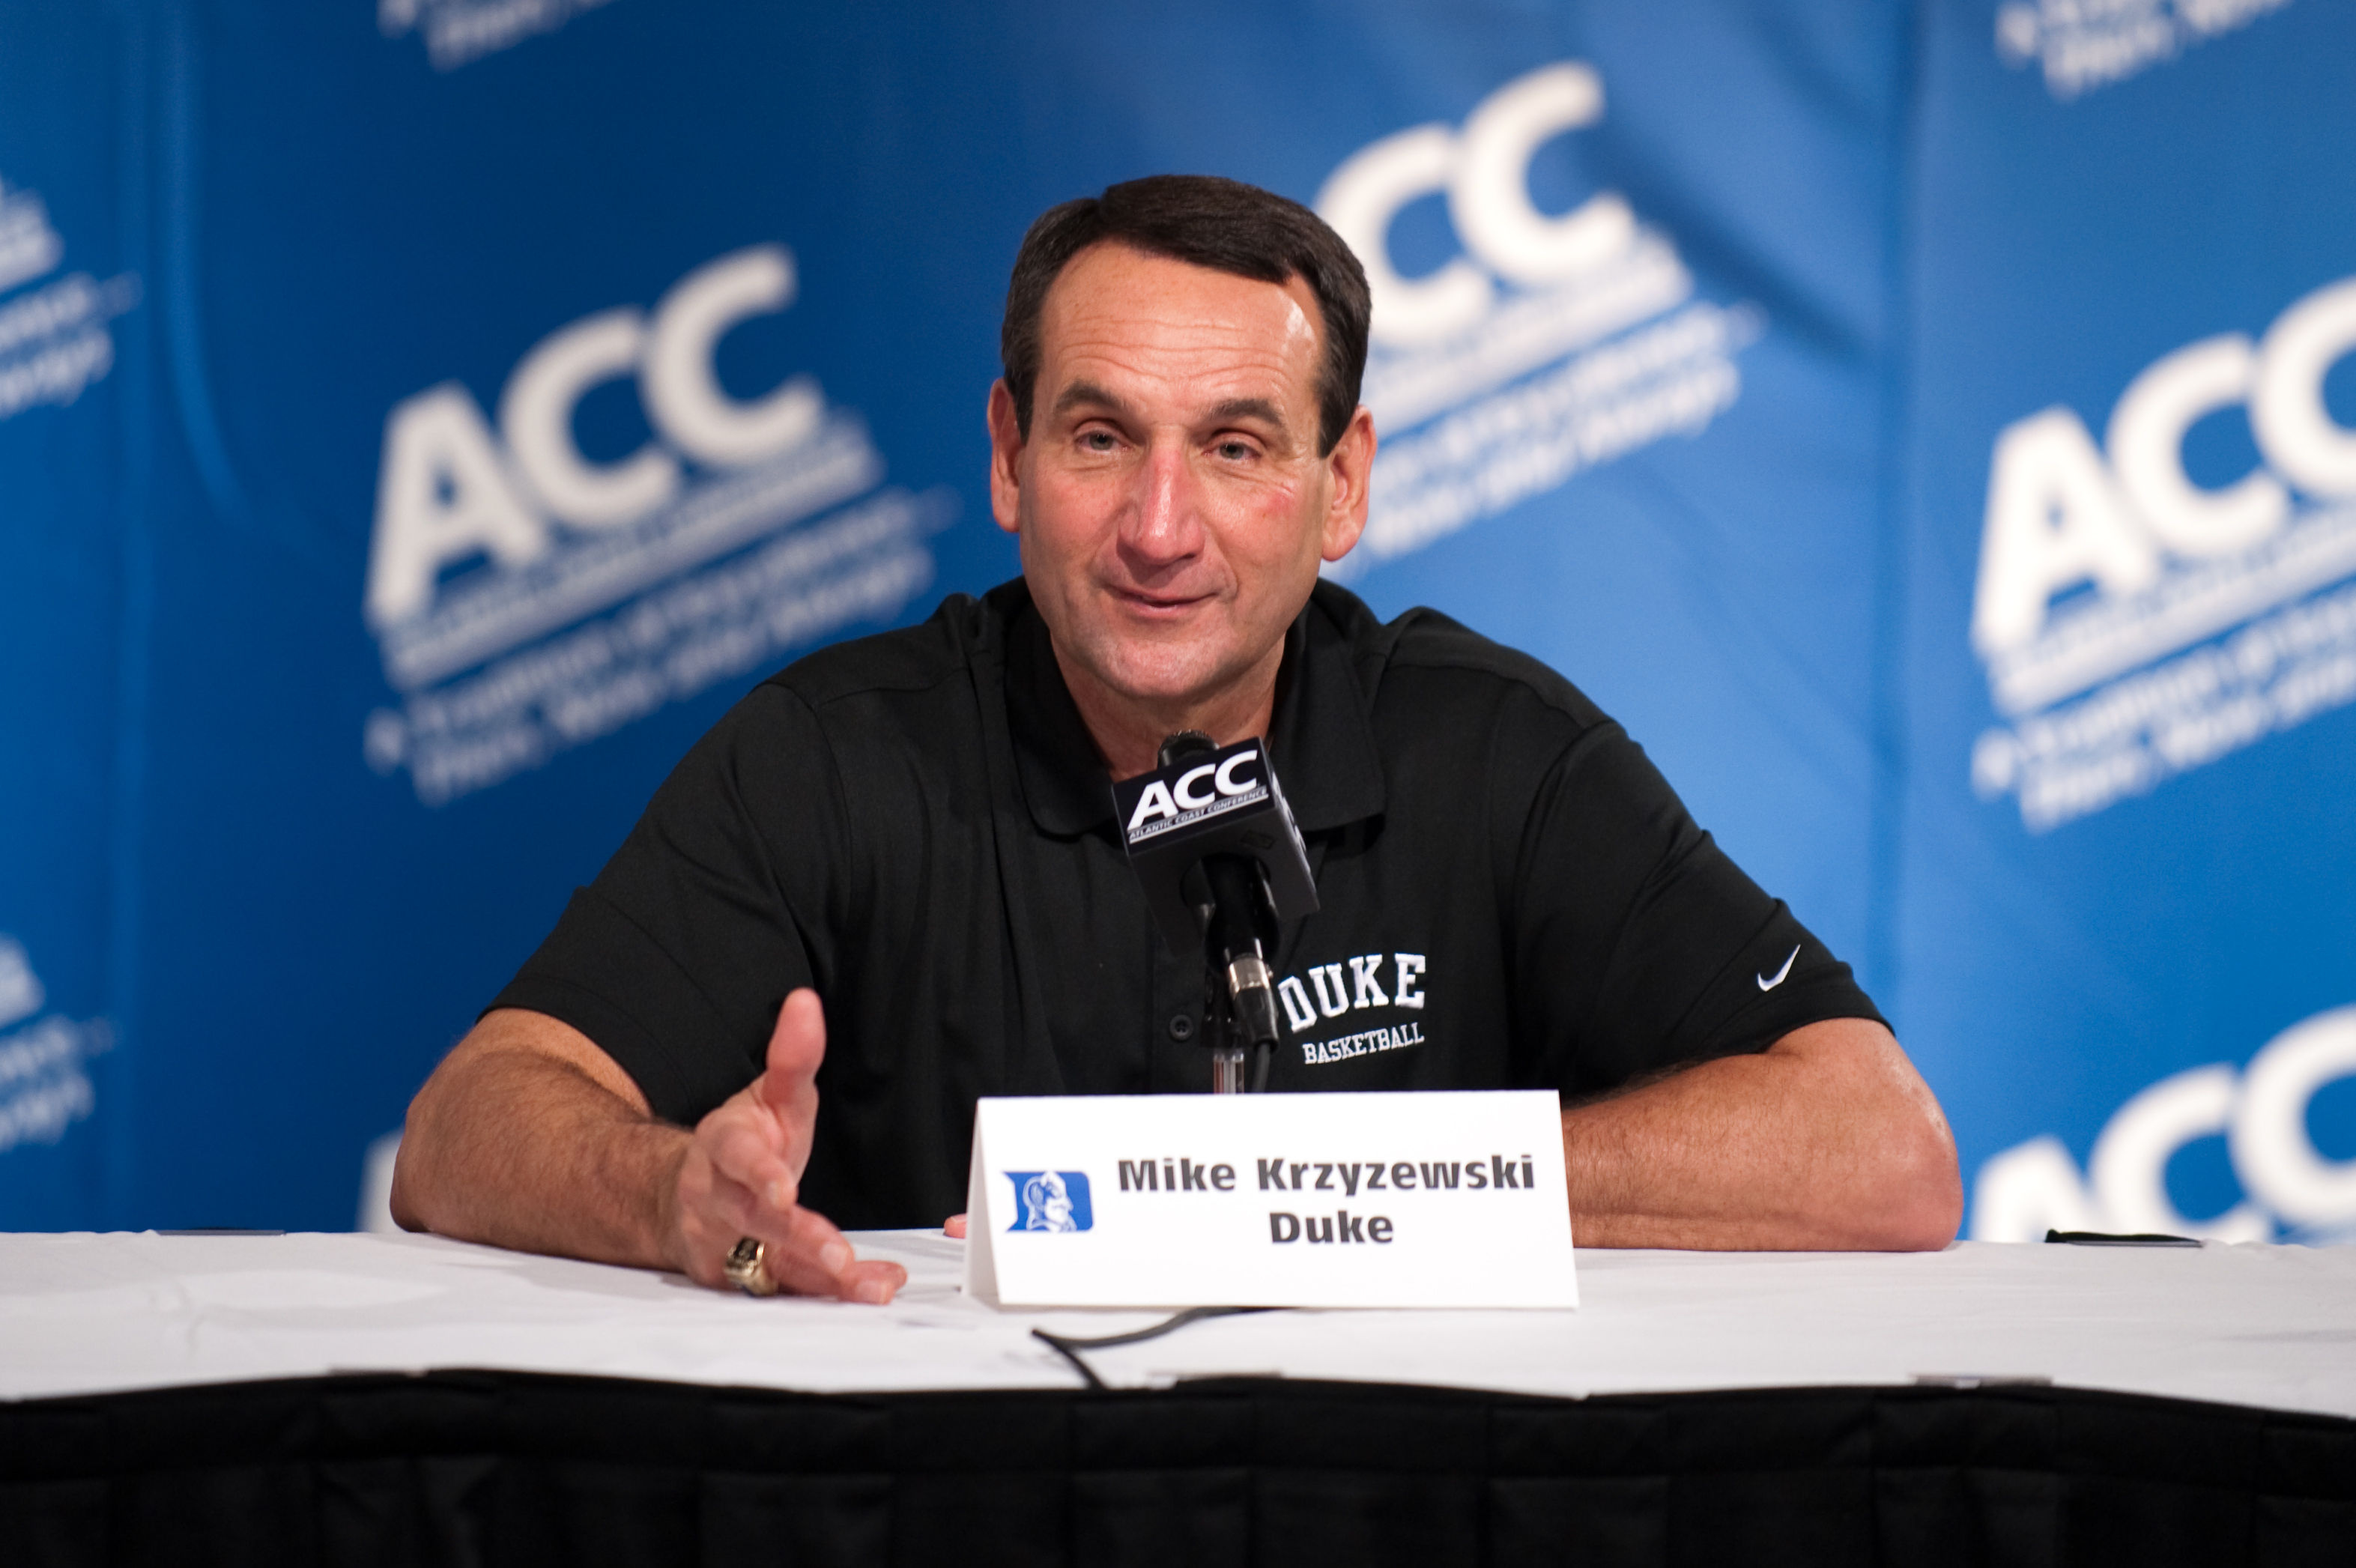 NCAA BASKETBALL: OCT 20 ACC Operation Basketball Media Day